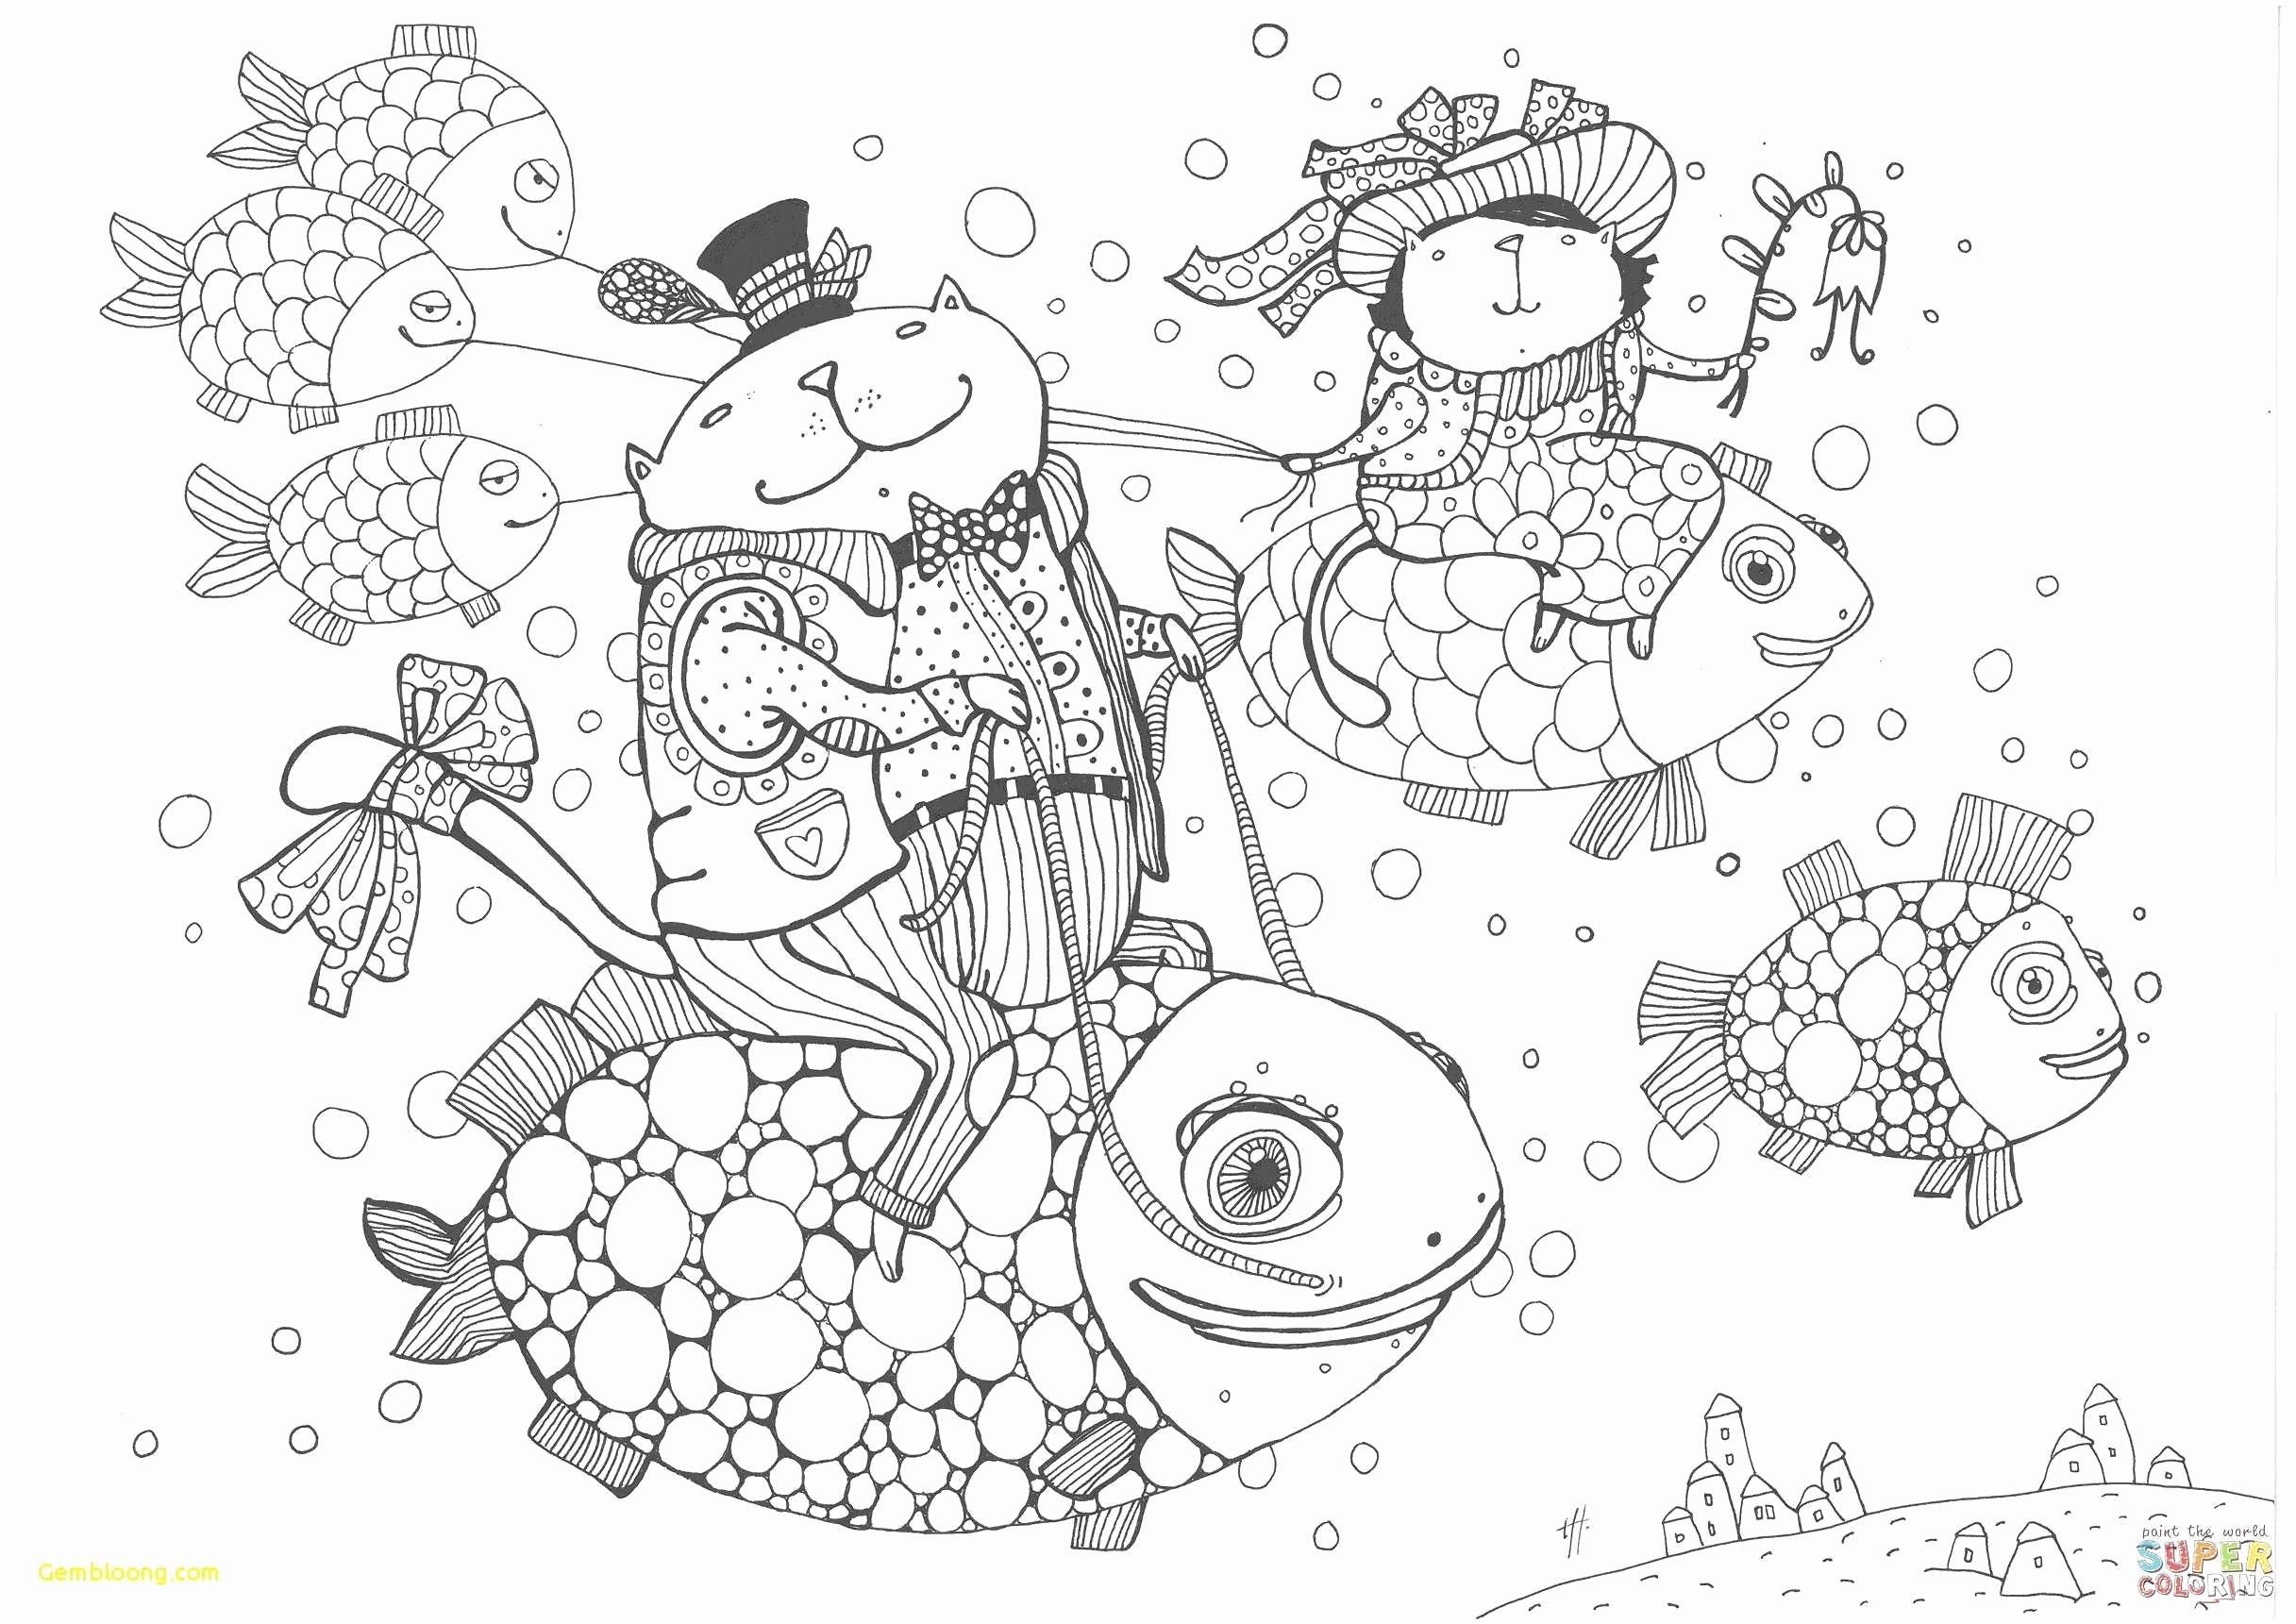 Rainbow Coloring Page With Color Words In 2020 Superhero Coloring Pages Princess Coloring Pages Animal Coloring Pages